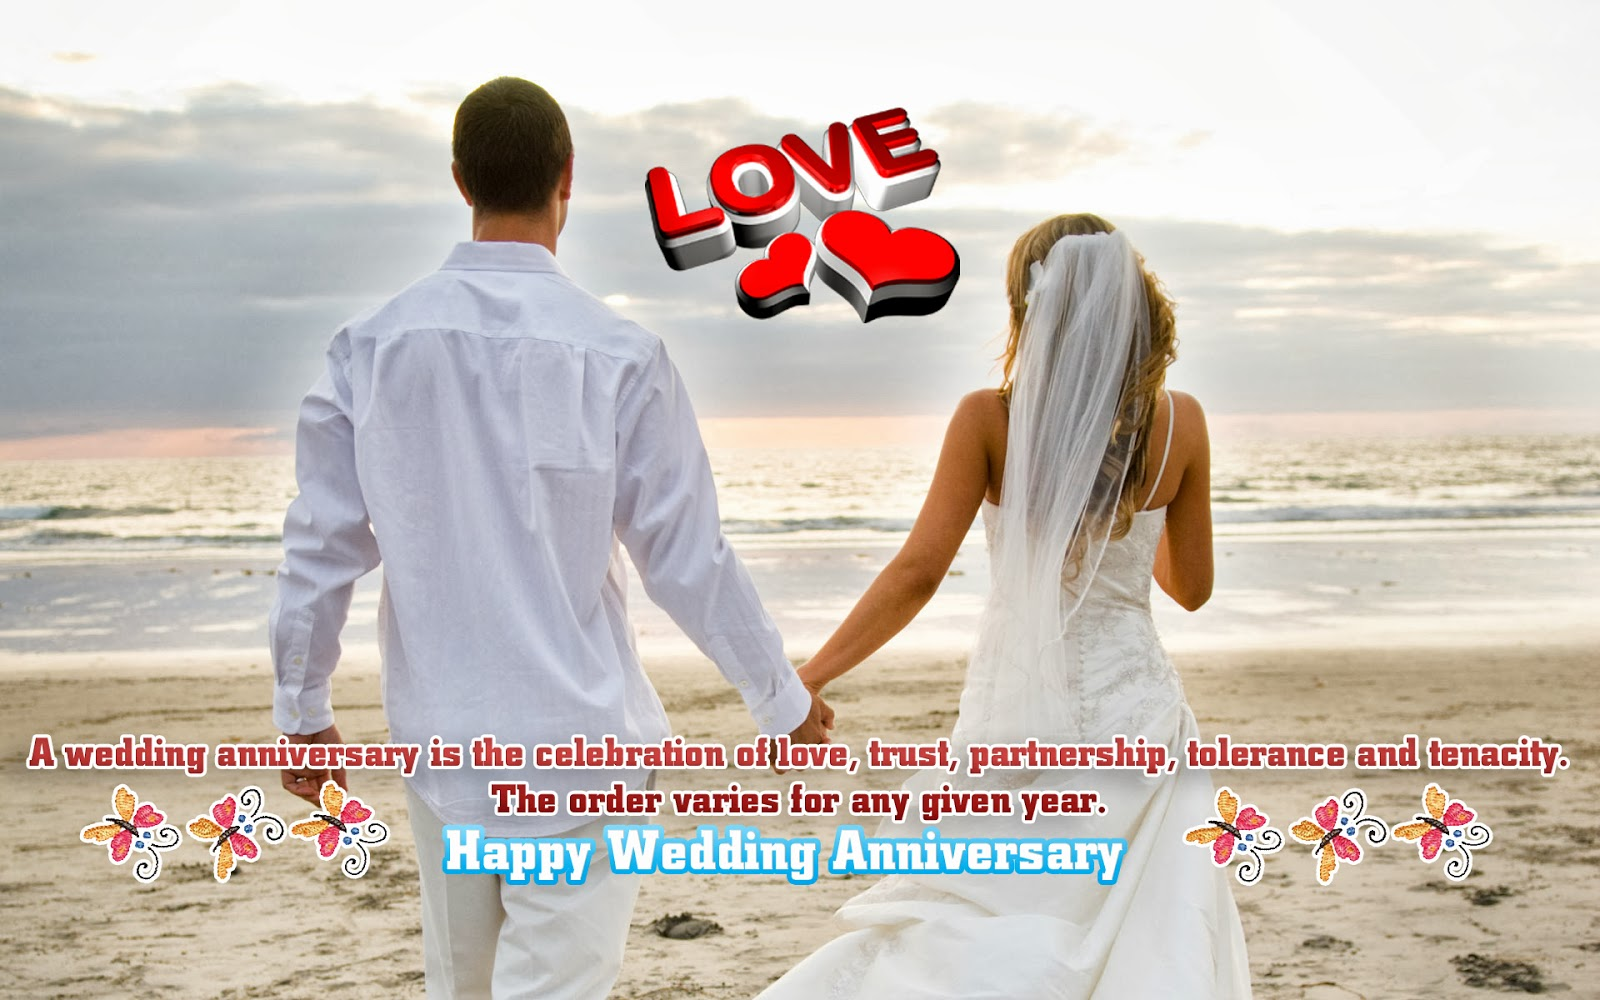 Khushi for life good messages cards on great marriage anniversary